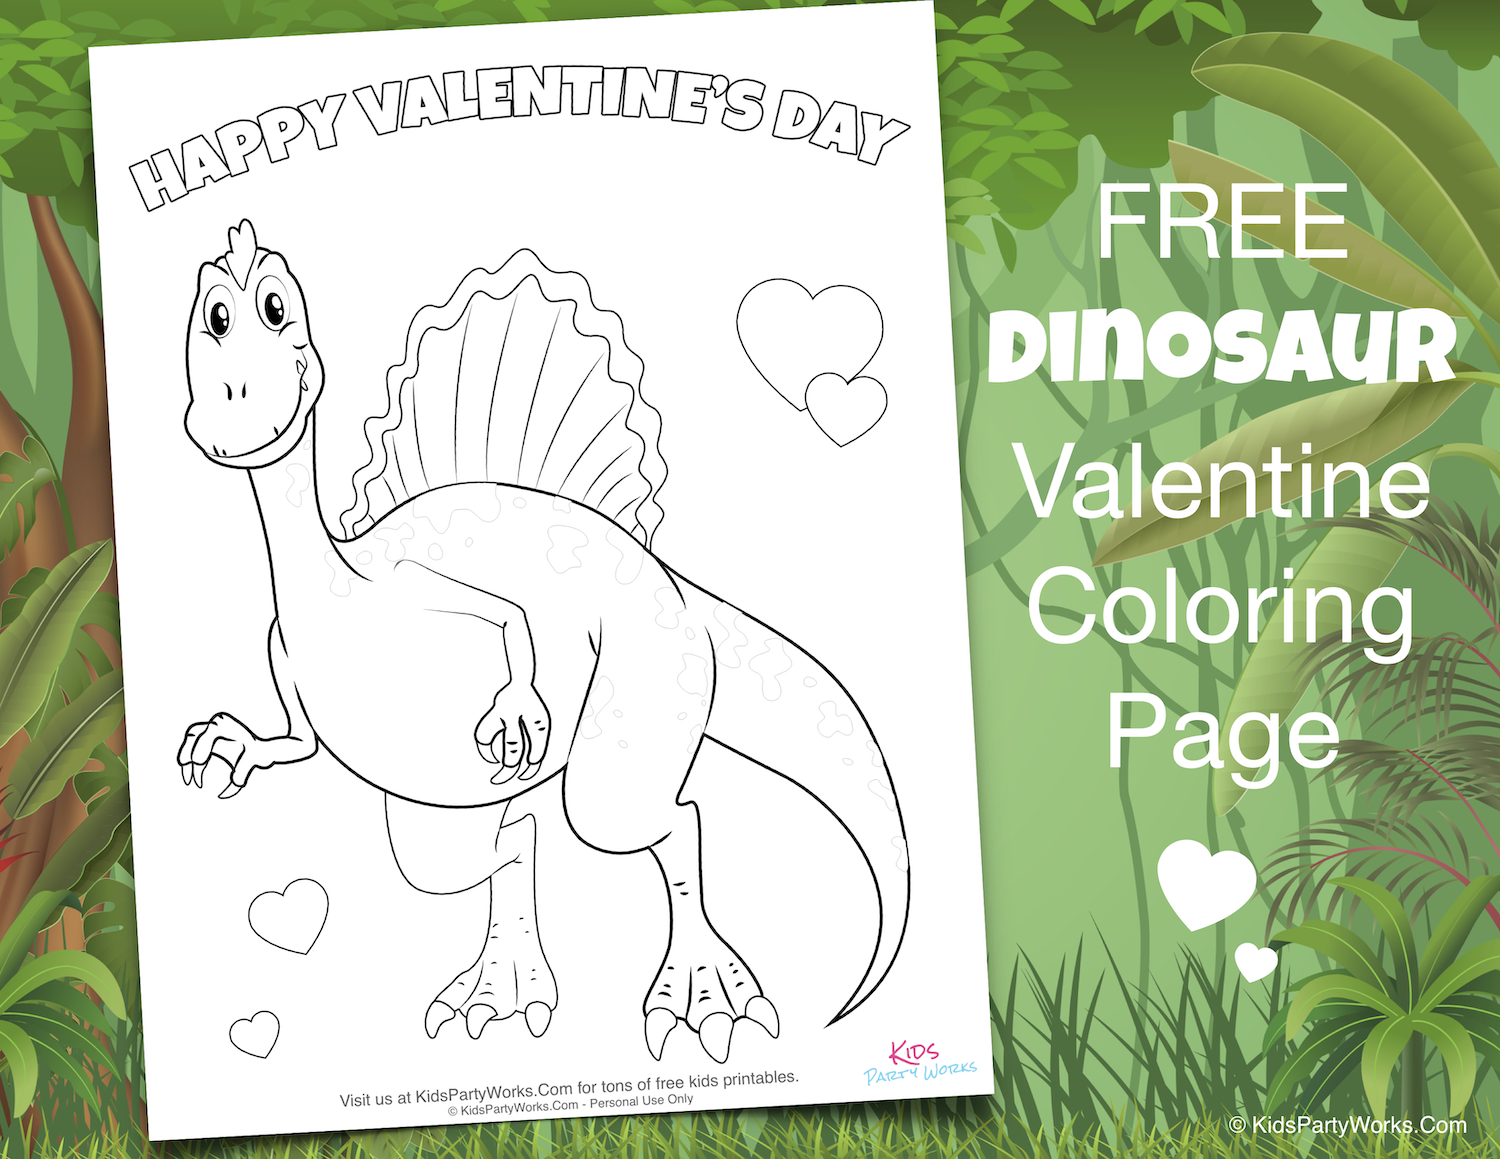 Free Valentine Dinosaur Coloring Page. Visit KidsPartyWorks.Com for tons of free kids printables.